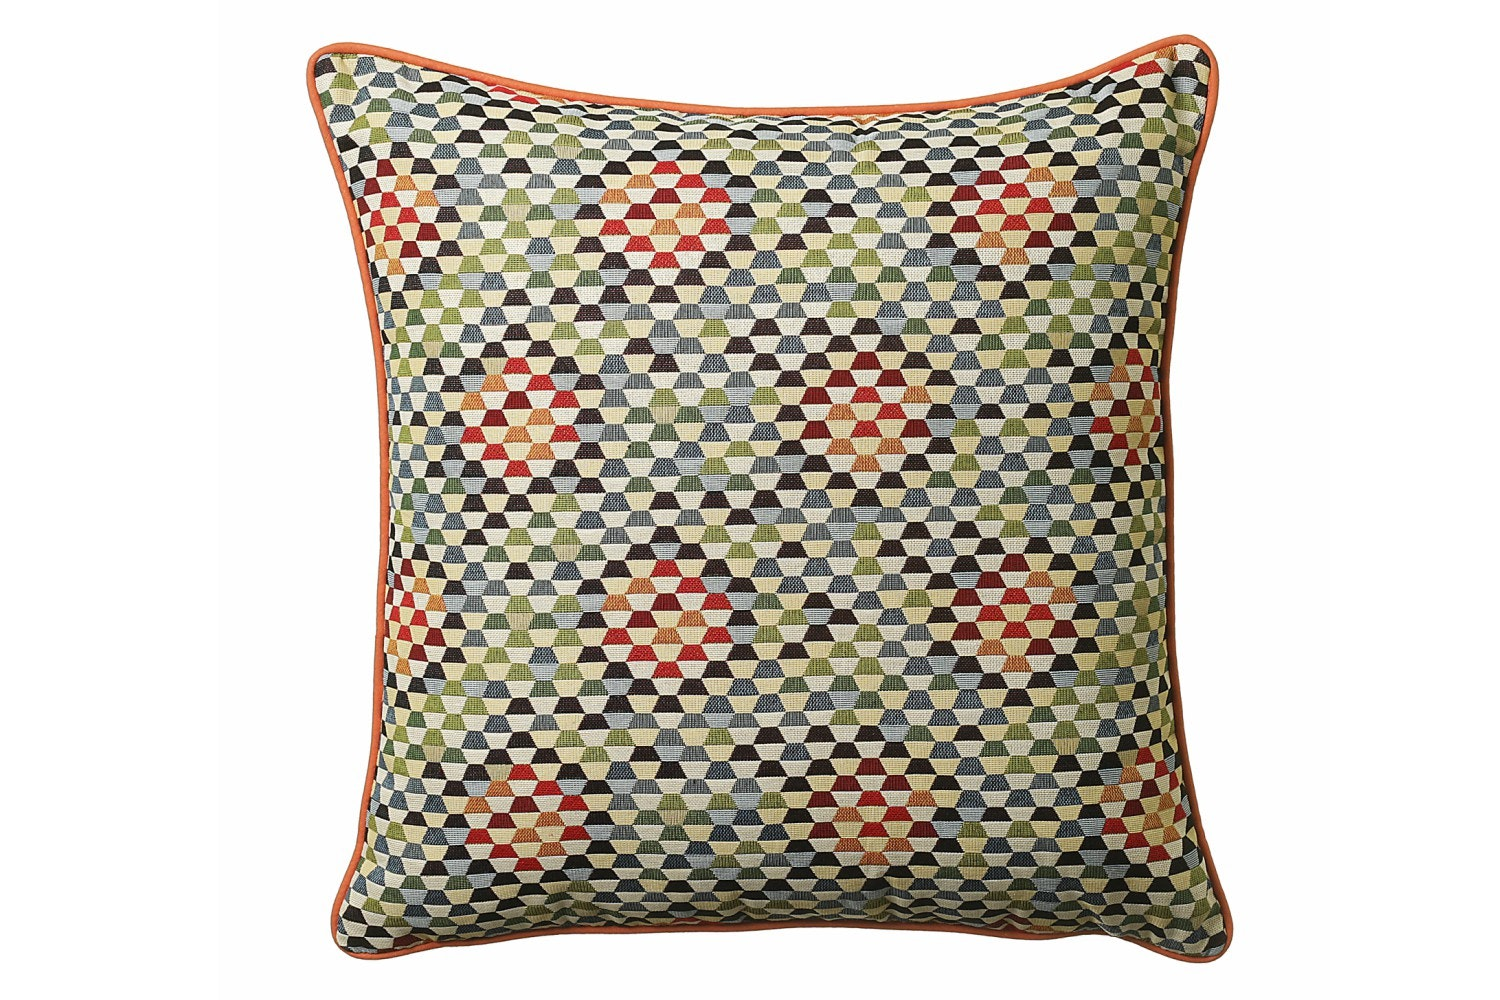 Scatterbox Zeta Cushion | 43x43cm